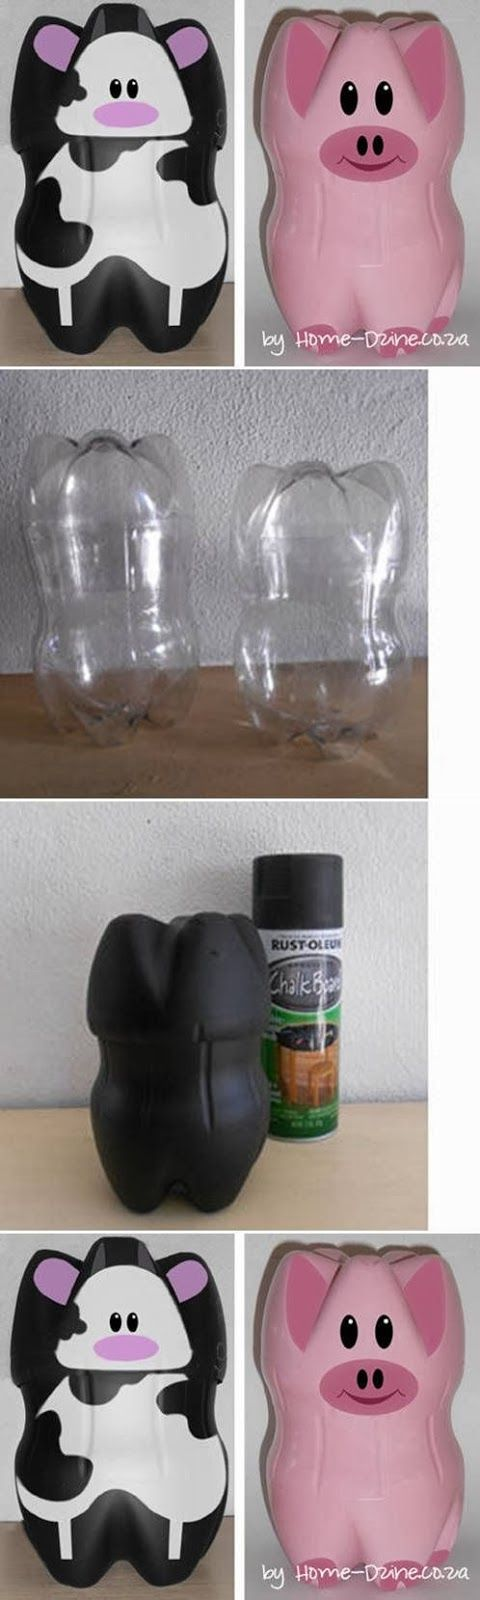 Will never get round to doing this but great use of recycled fizzy drink bottles